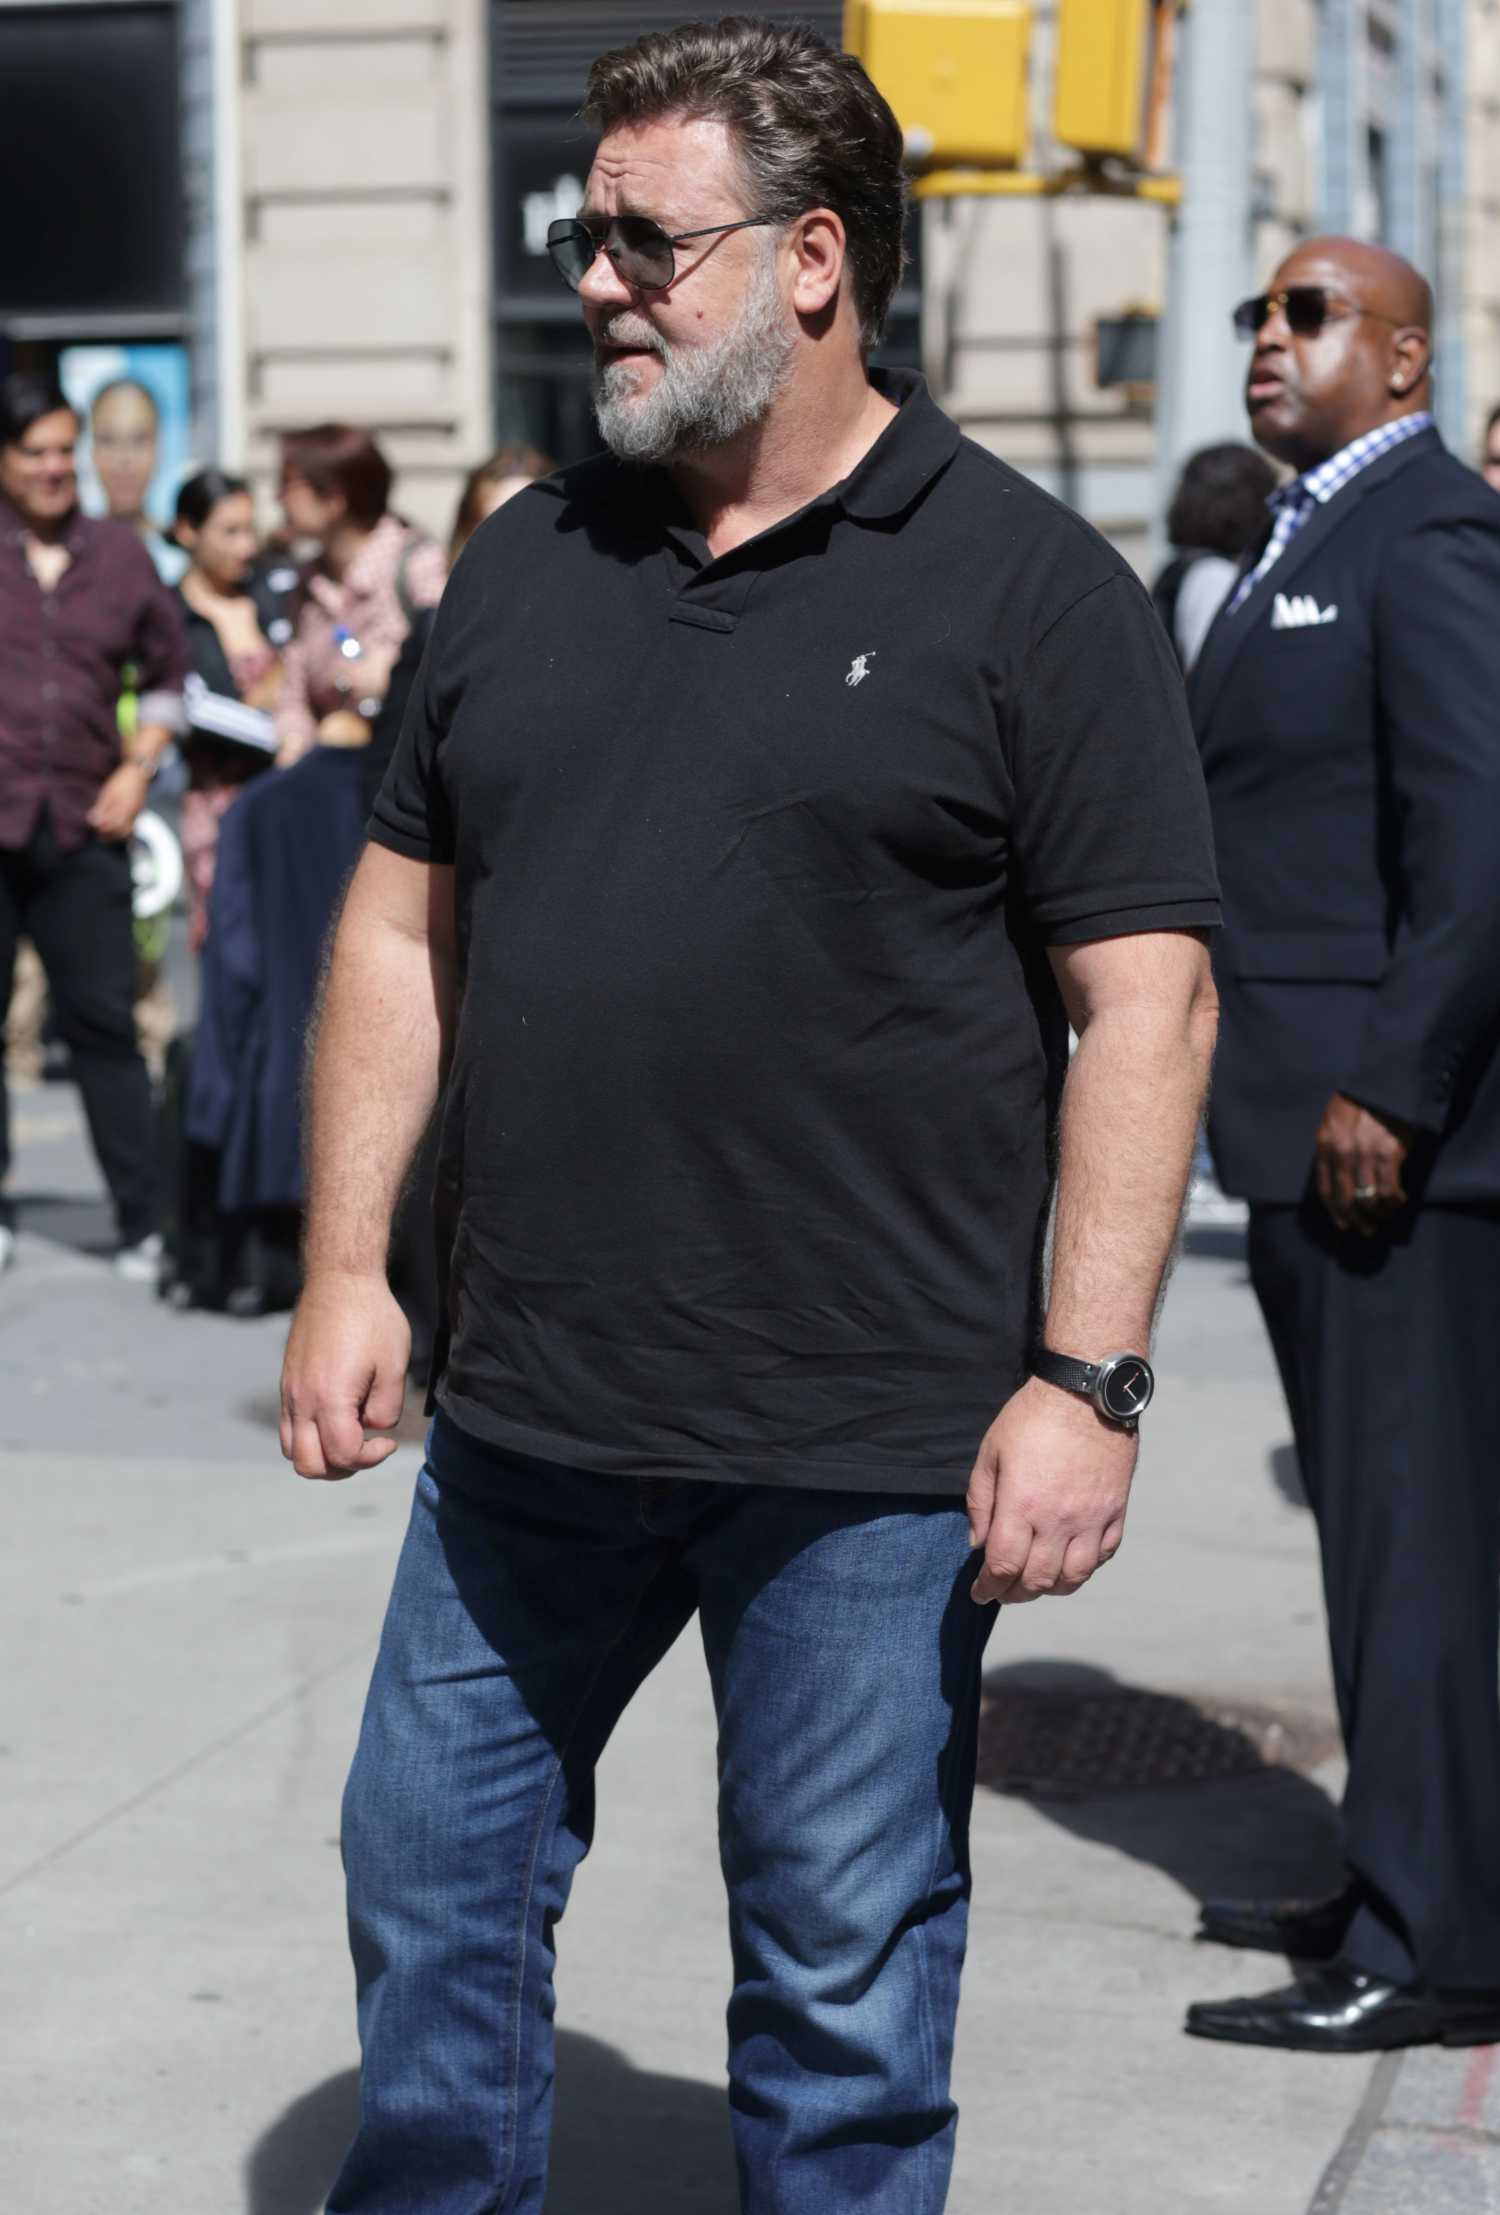 Russell Crowe in a Black Polo Visits Good Morning America